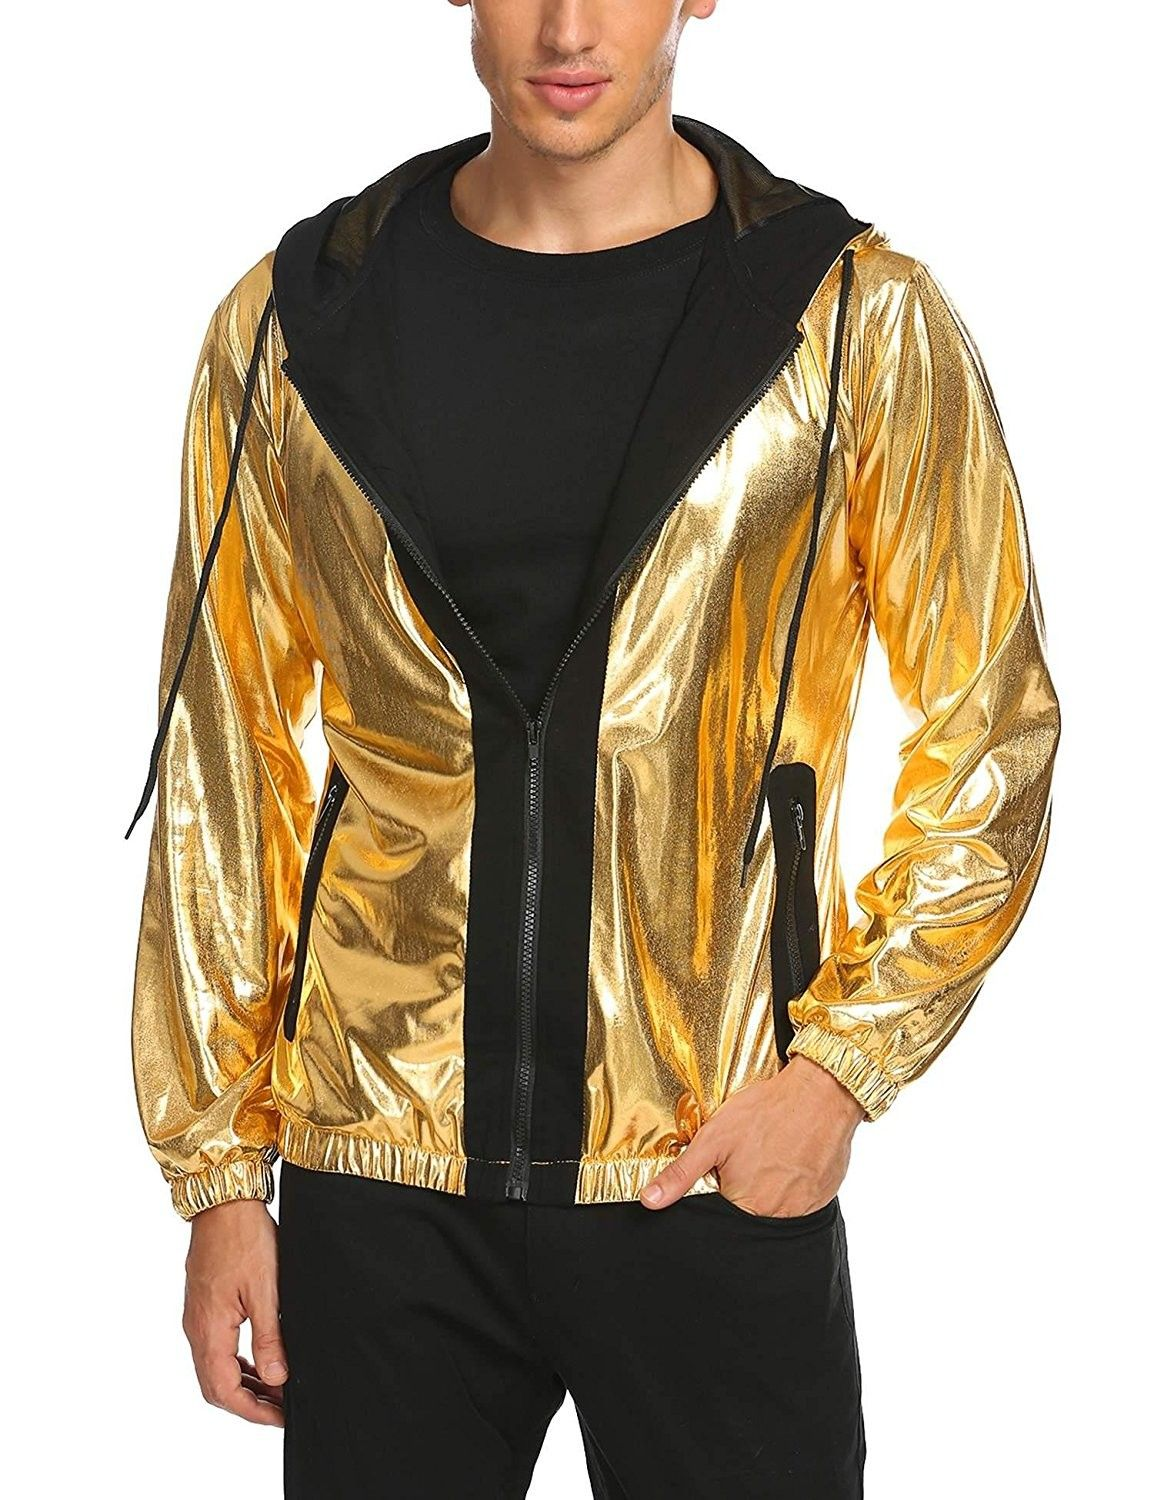 Men S Clothing Jackets Coats Lightweight Jackets Mens Prom Party Metallic Jacket Hooded Varsity Bo Prom For Guys Urban Outfitters Clothes Party Outfit Men [ 1500 x 1154 Pixel ]